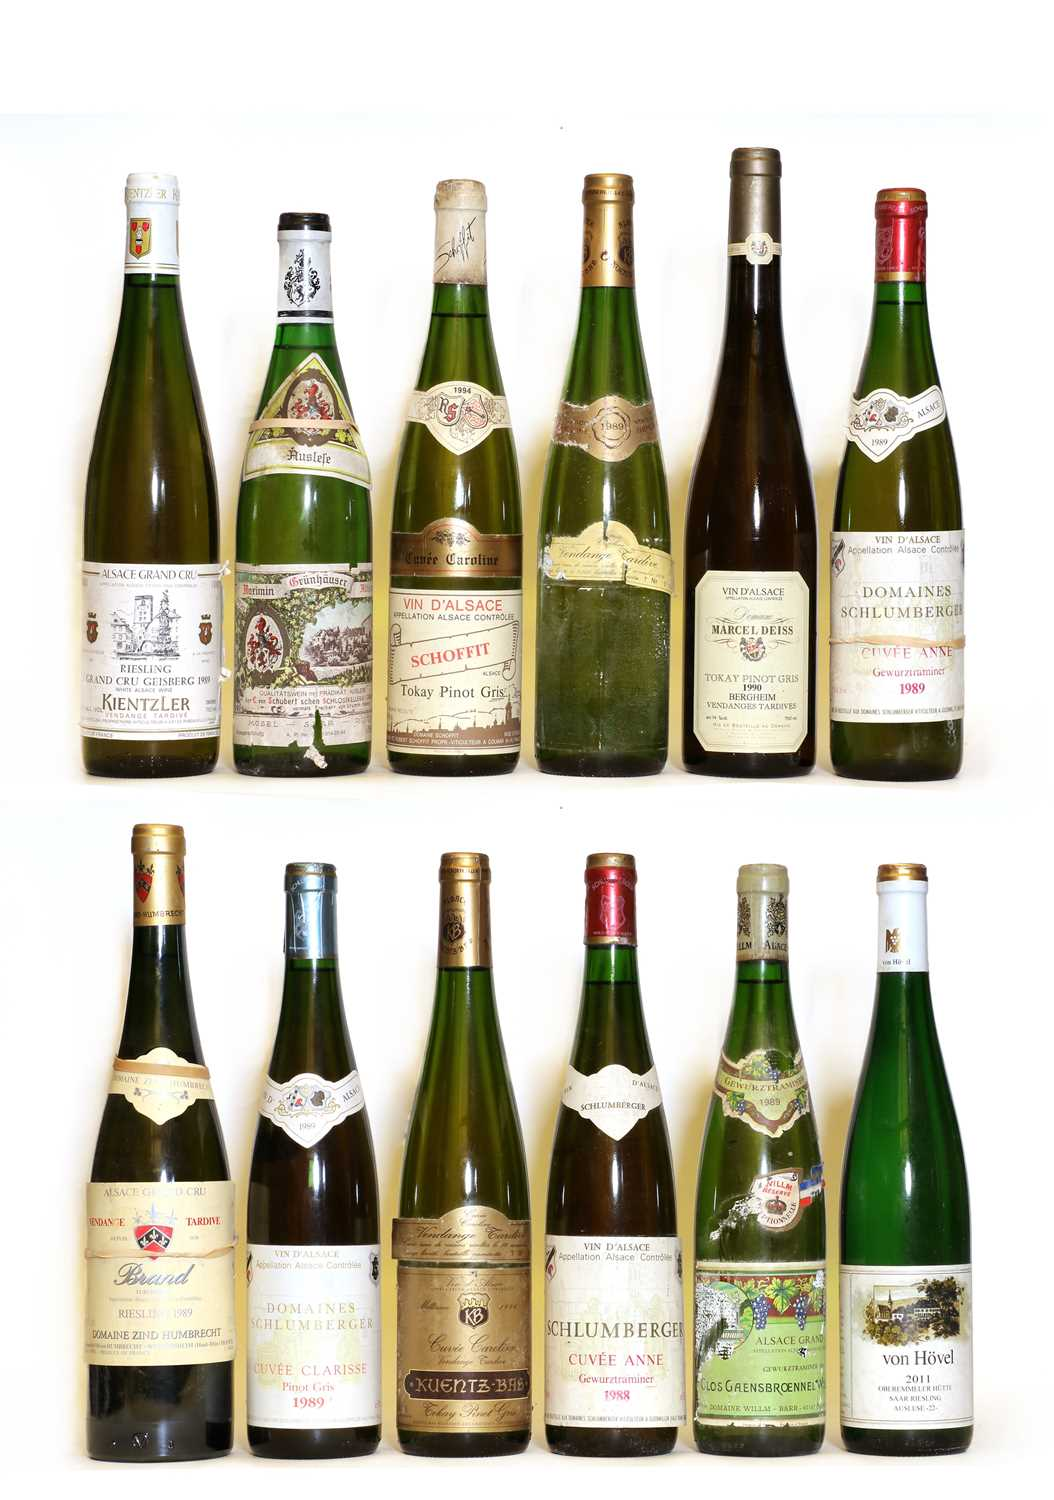 Assorted German and Alsatian: Tokay Pinot Gris, Schoffit, 1994, one bottle and 11 various others